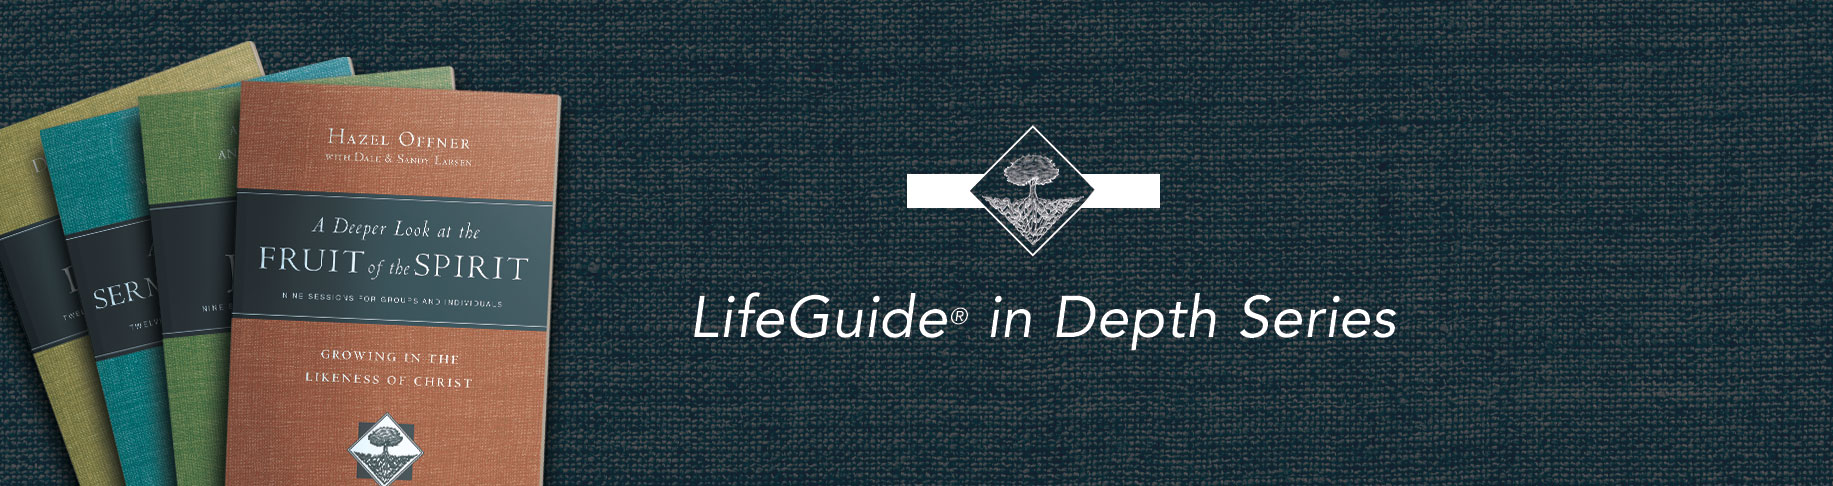 LifeGuide in Depth Series